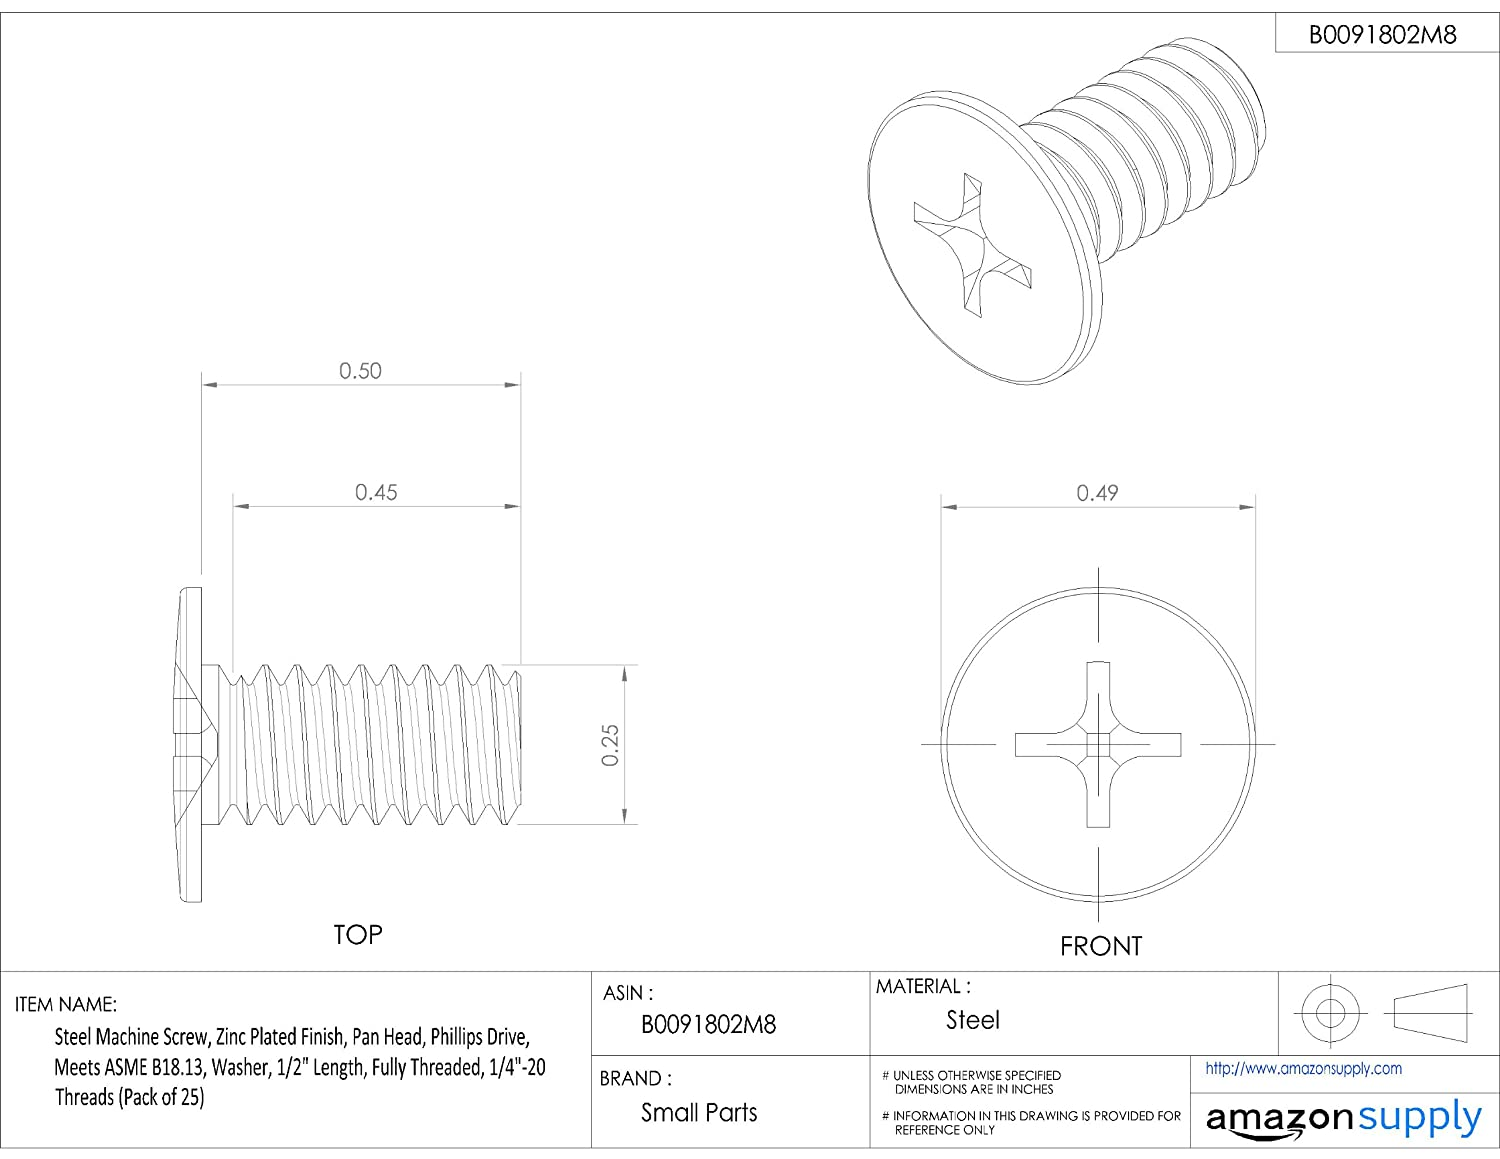 Fully Threaded 3//8 Length 3//8 Length Small Parts Pack of 50 Internal-Tooth Lock Washer #2-56 UNC Threads Plain Finish Phillips Drive 18-8 Stainless Steel Machine Screw Meets ASME B18.13 Pan Head